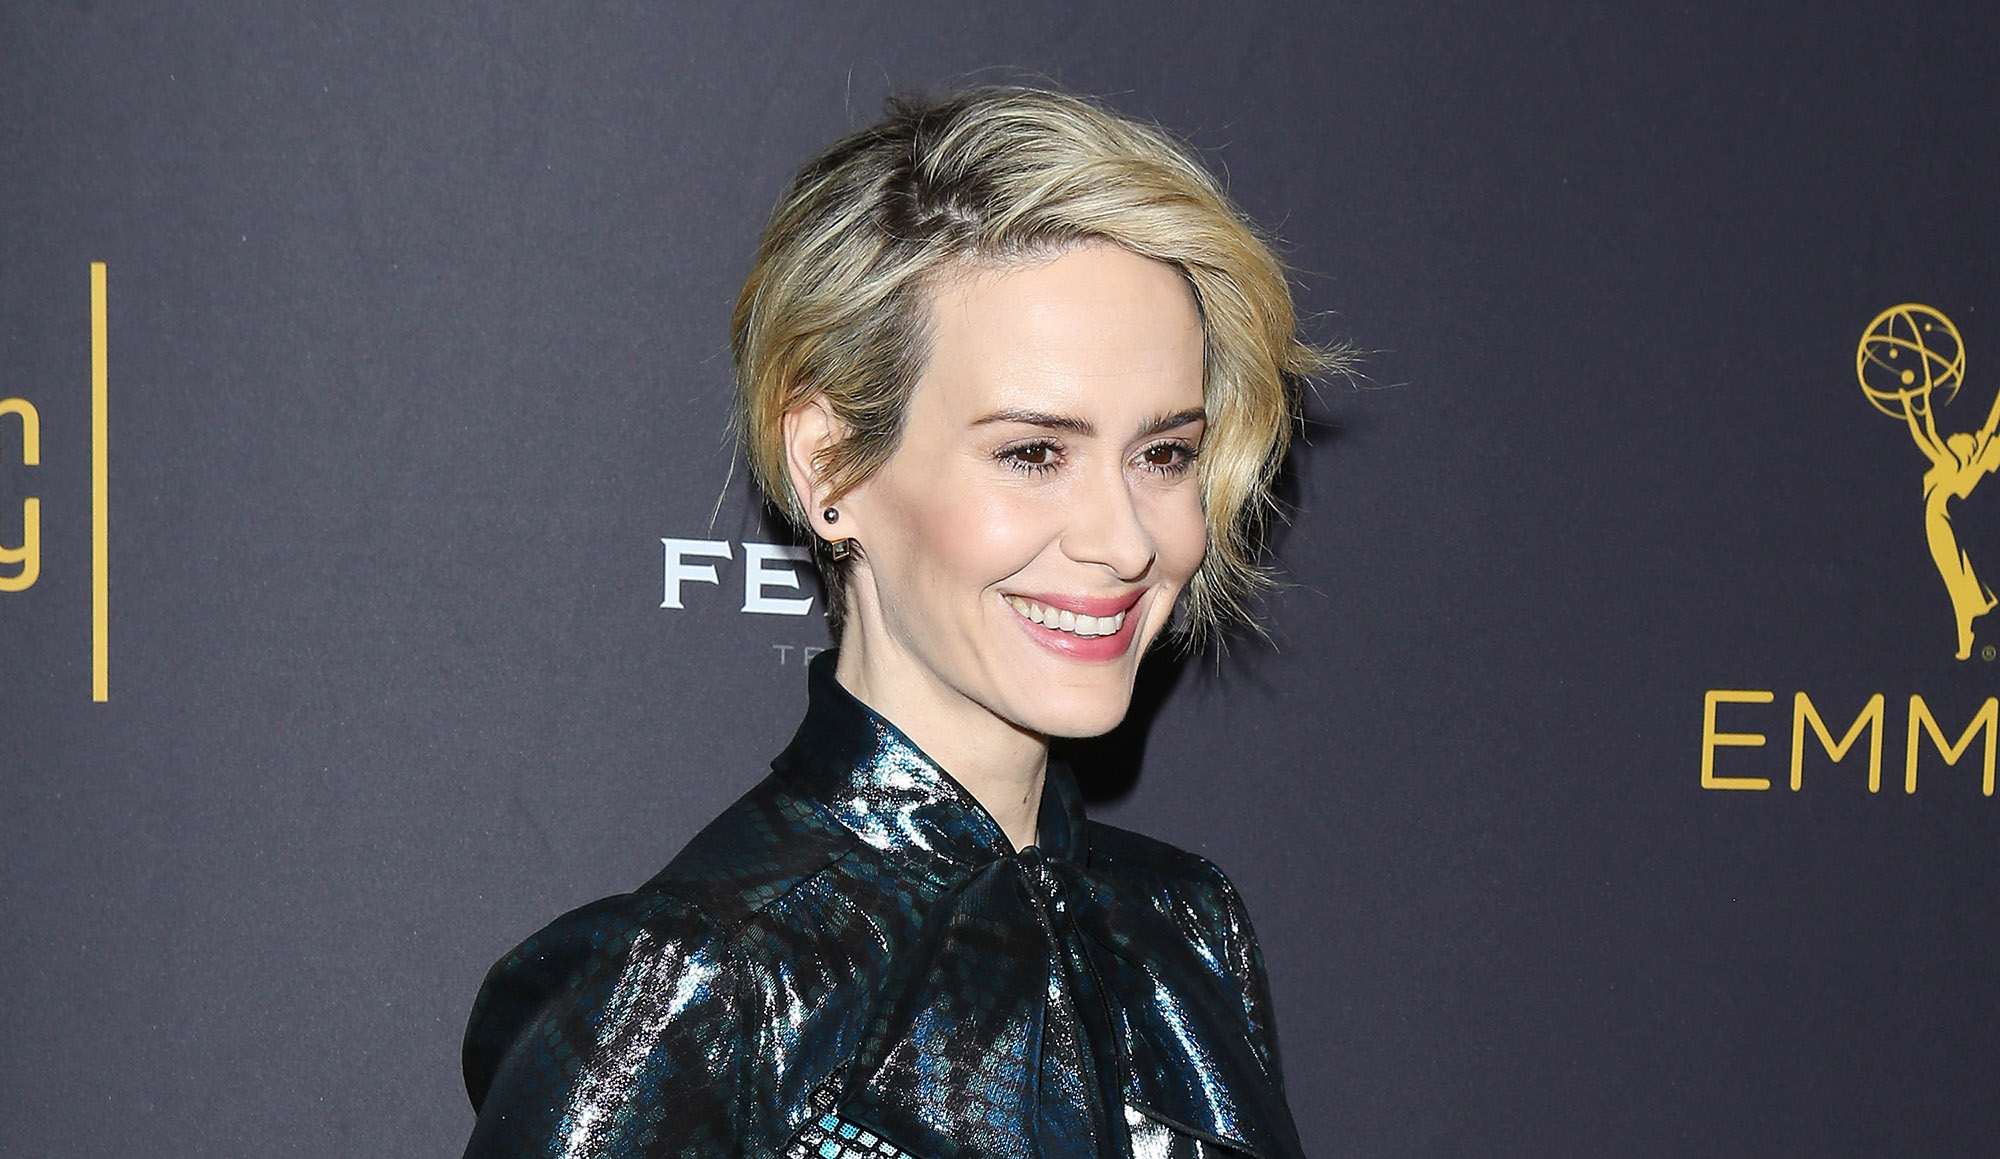 Sarah Paulson attends the Television Academy's Performers Peer Group celebration held at Montage Beverly Hills on August 22, 2016 in Beverly Hills, California.  (Photo by Michael Tran/FilmMagic)